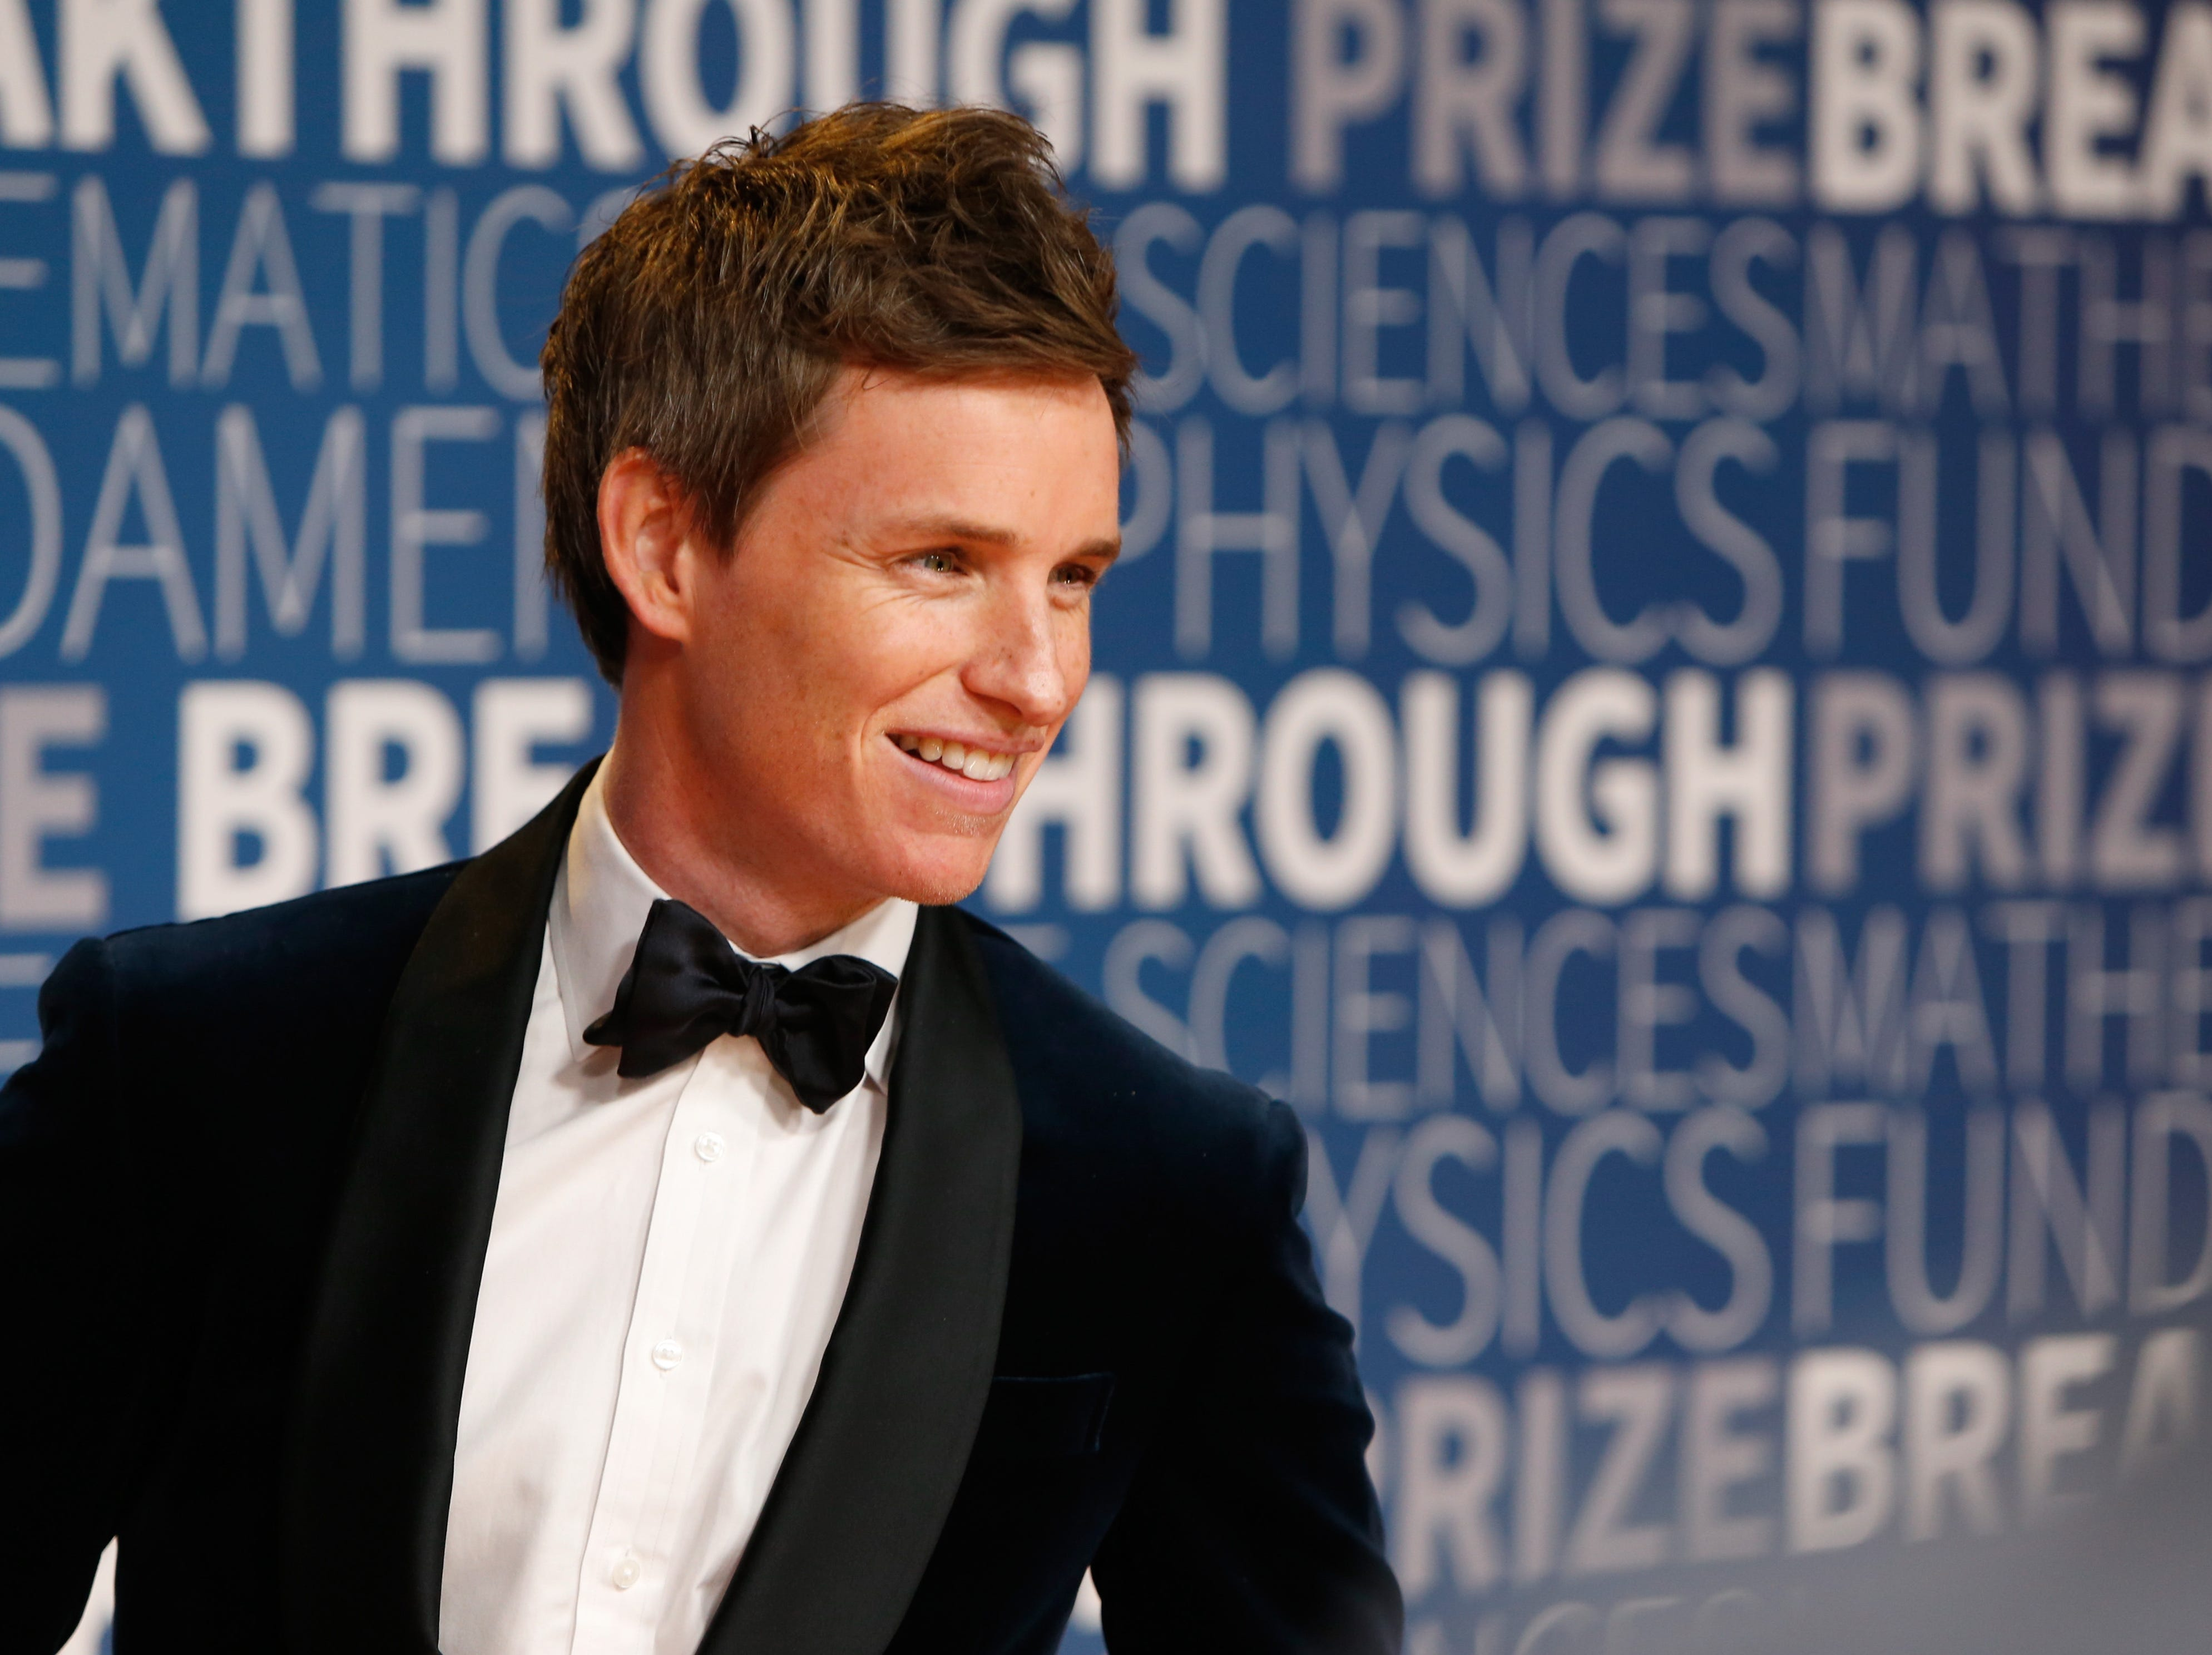 MOUNTAIN VIEW, CA - NOVEMBER 04:  Eddie Redmayne attends the 2019 Breakthrough Prize at NASA Ames Research Center on November 4, 2018 in Mountain View, California.  (Photo by Lachlan Cunningham/Getty Images for Breakthrough Prize) ORG XMIT: 775252235 ORIG FILE ID: 1057495588